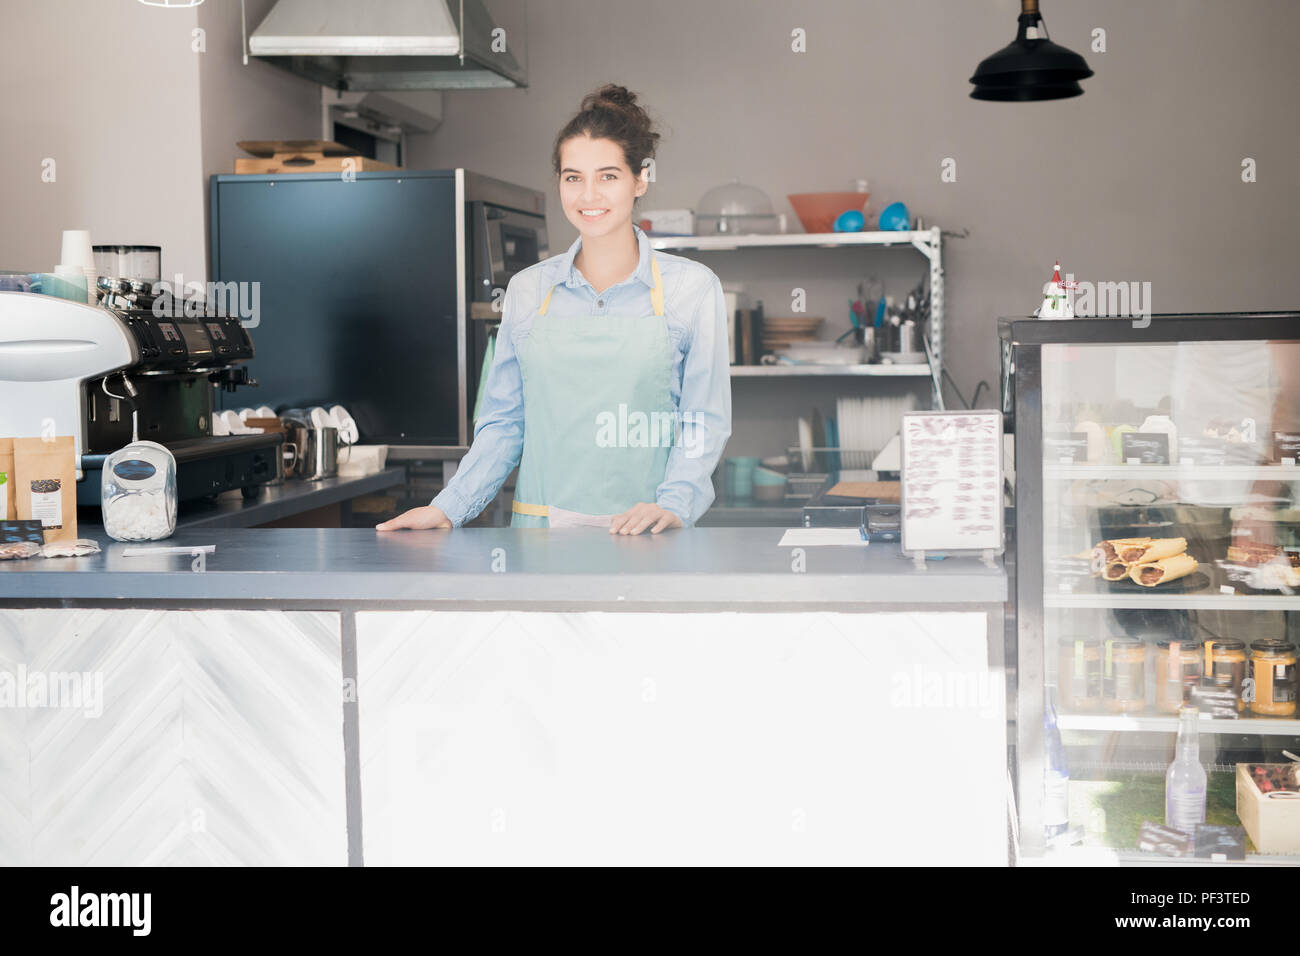 Smiling Shopkeeper Behind Counter - Stock Image